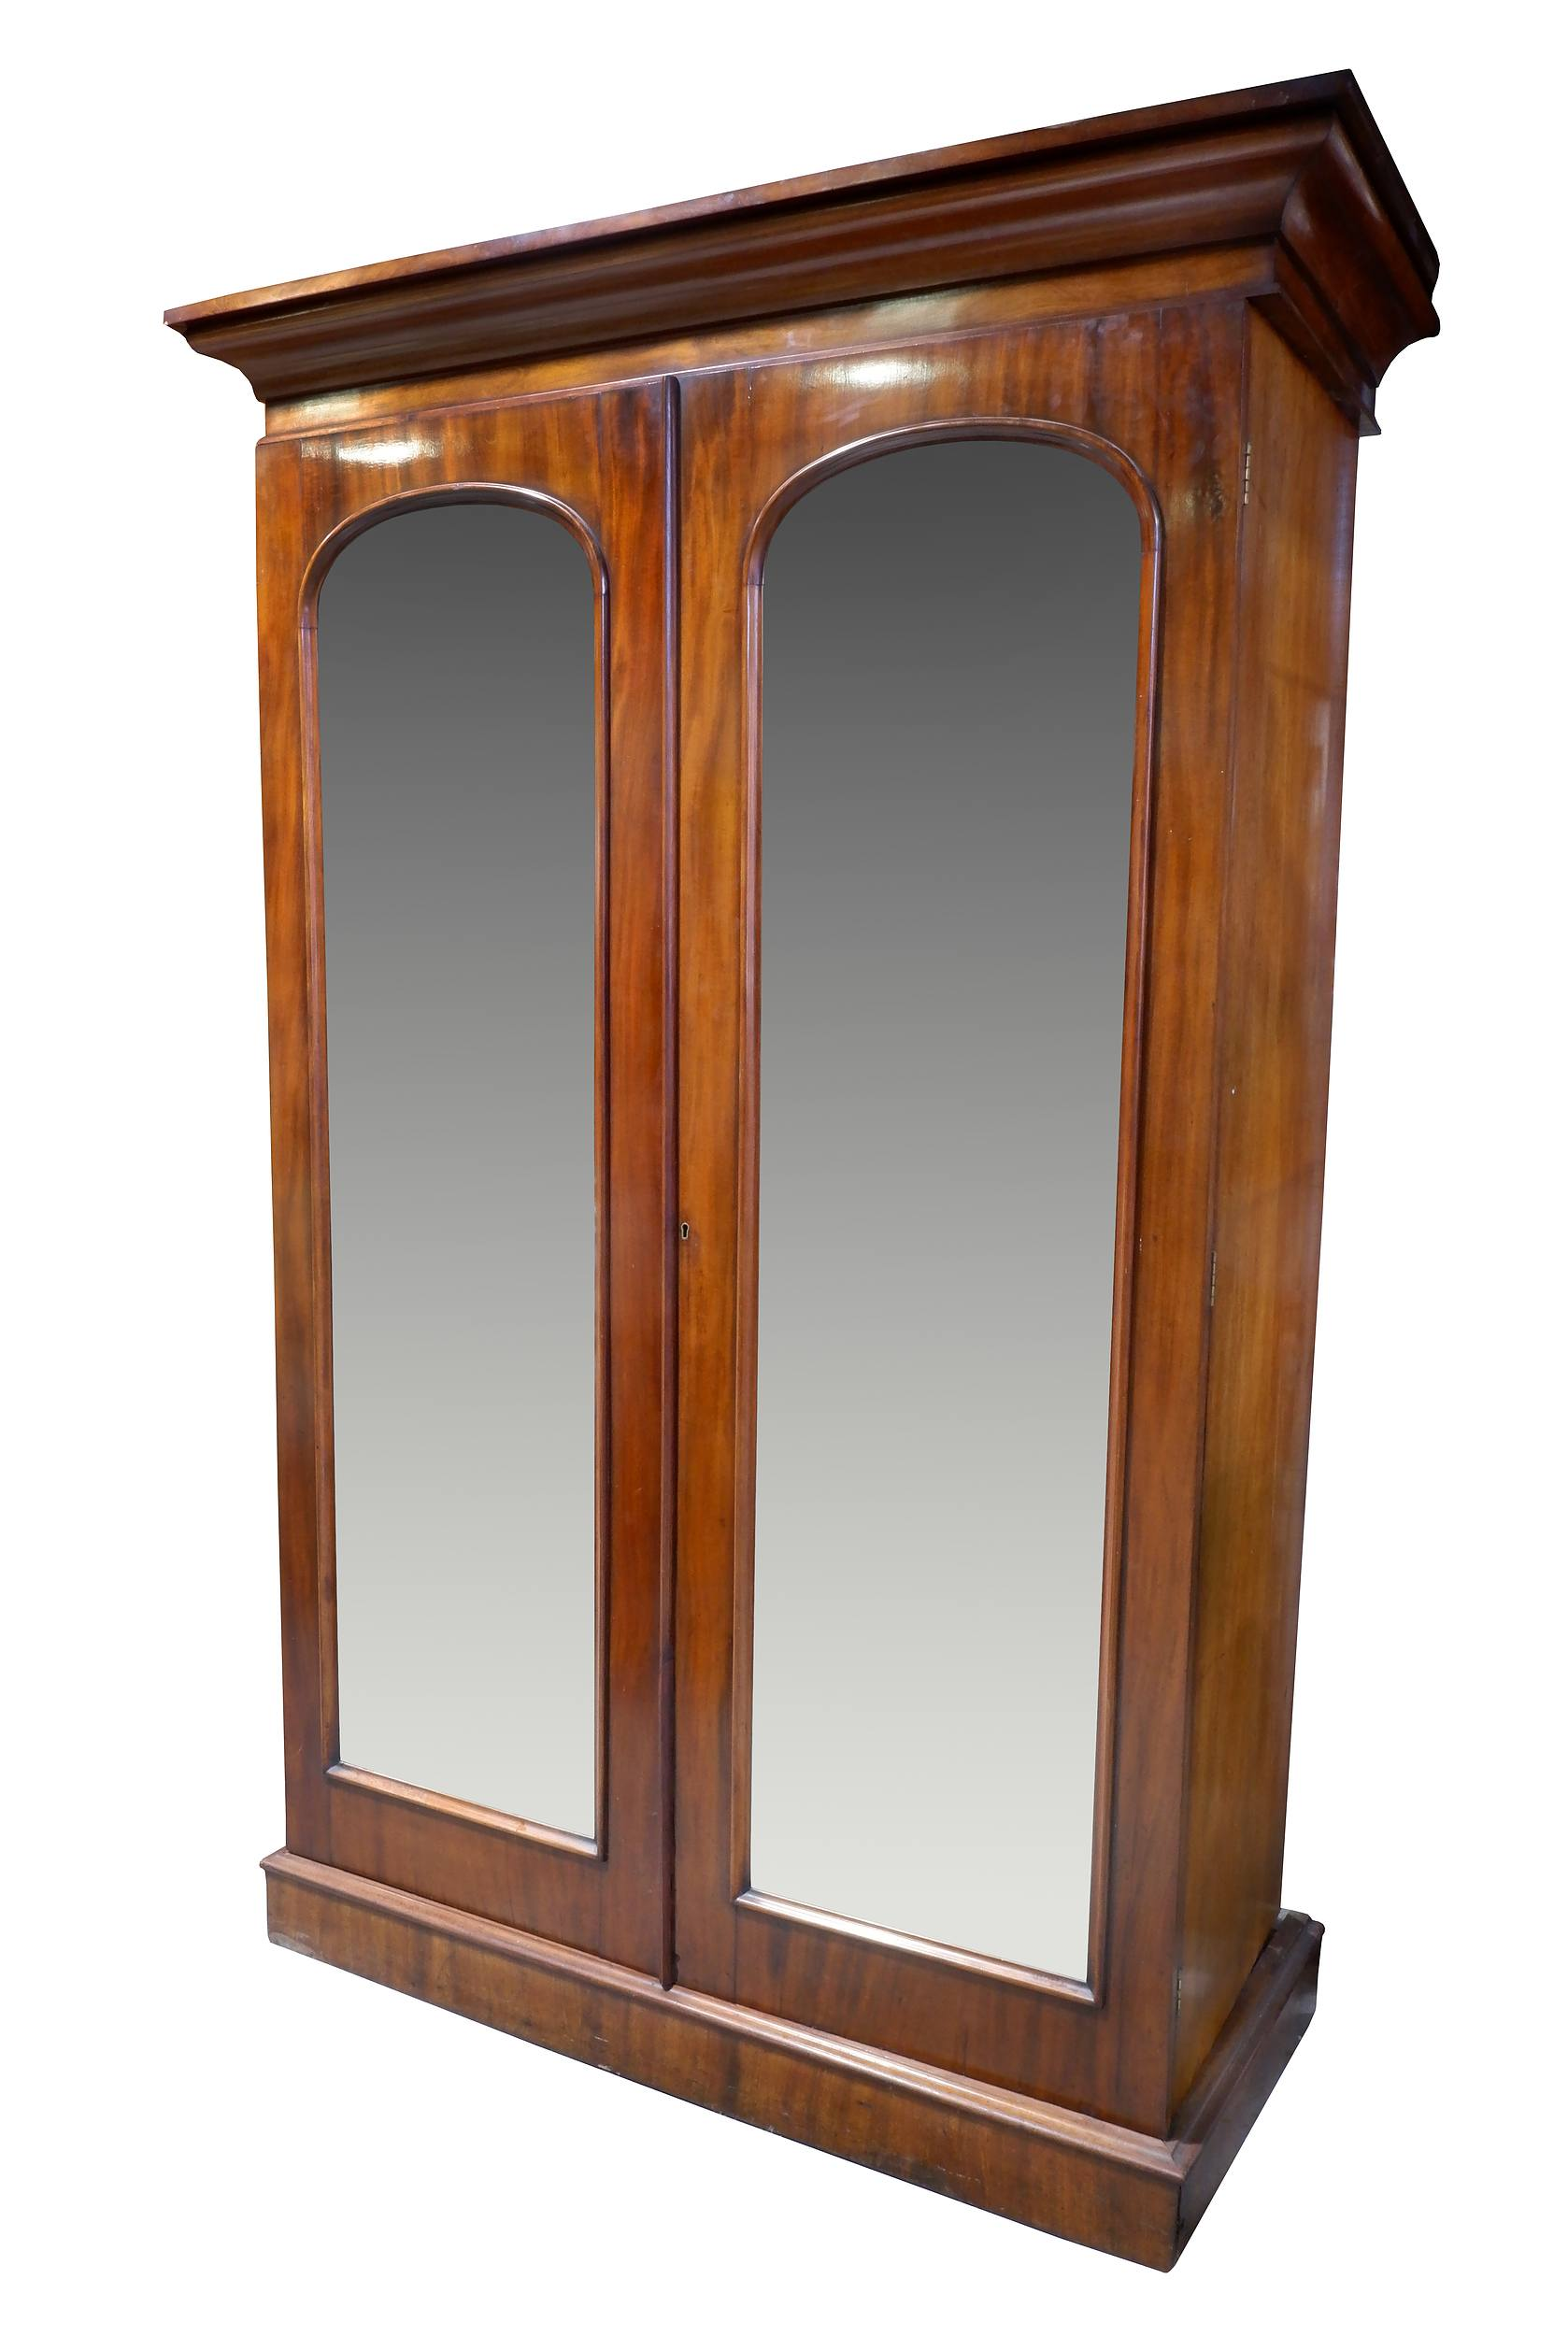 'Victorian Flame Mahogany Wardrobe with Arched Mirrored Doors, Circa 1880'